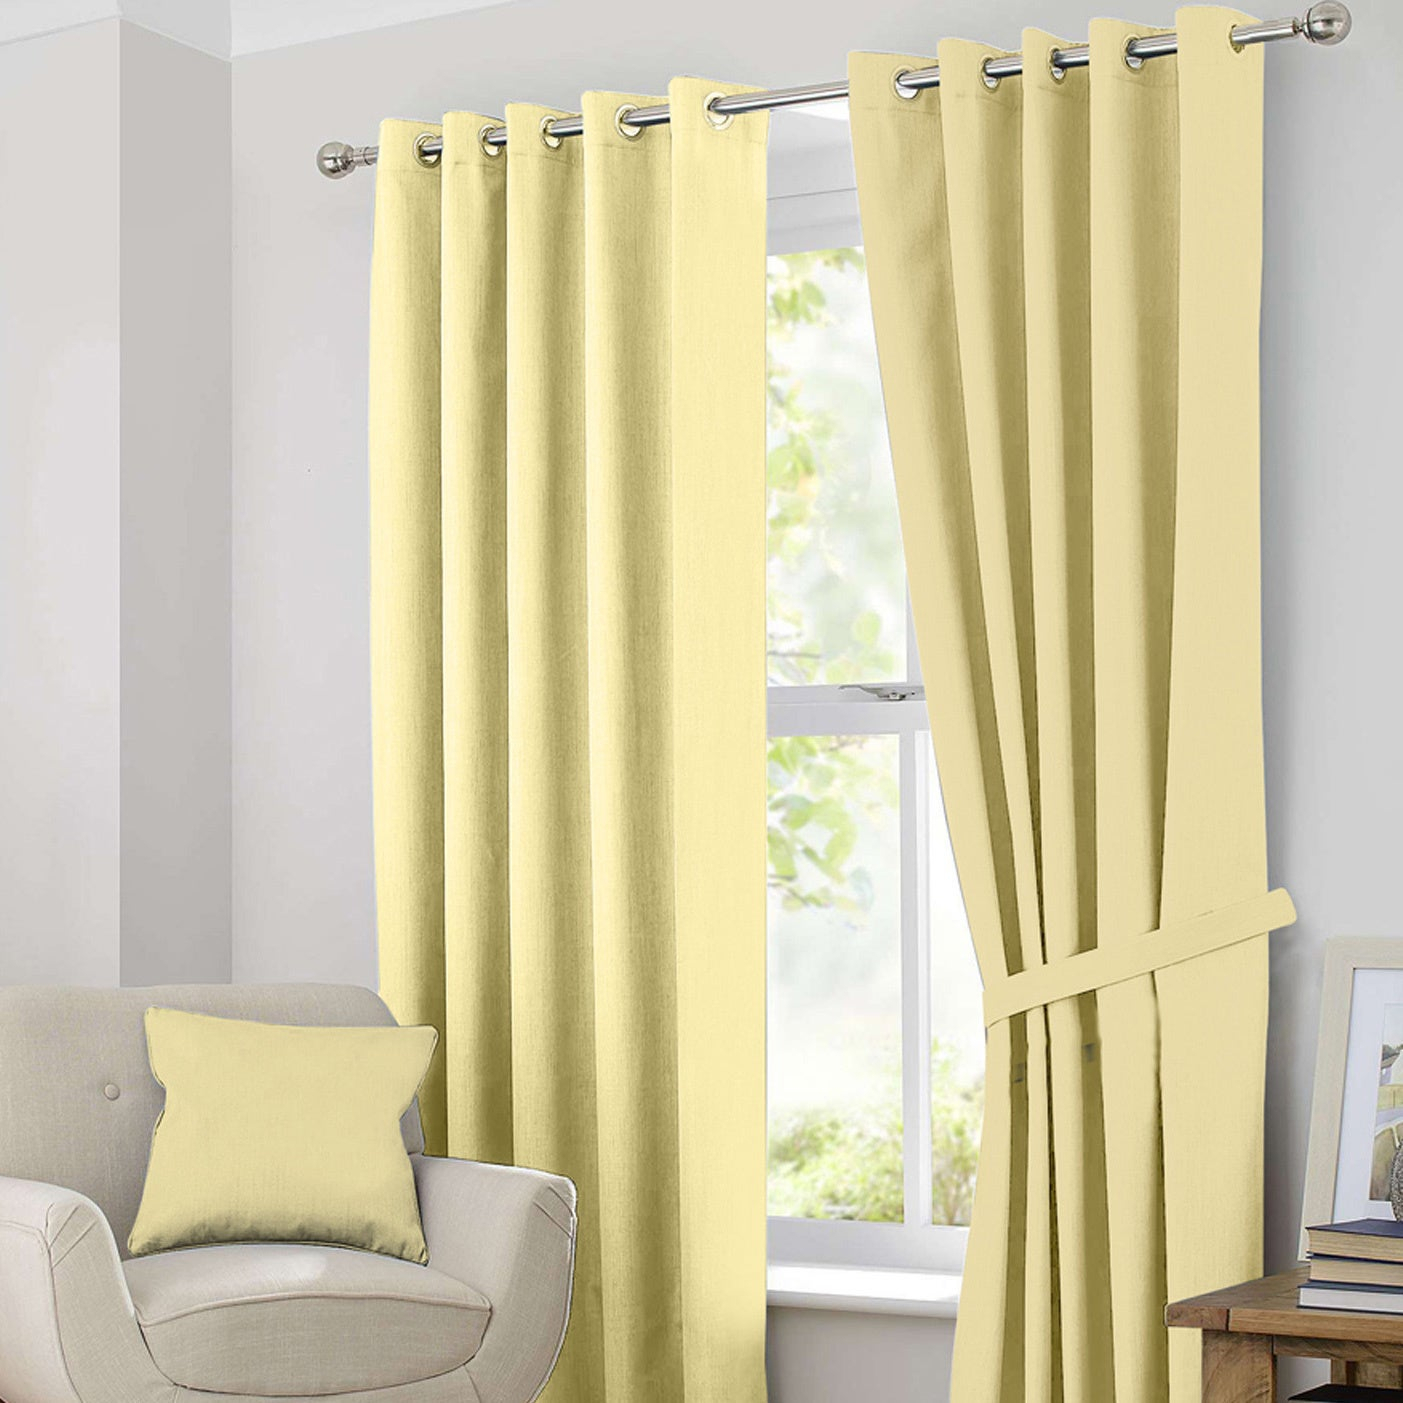 Ample Decor Blackout Curtain Panel Pair Throughout Tuscan Thermal Backed Blackout Curtain Panel Pairs (View 4 of 30)